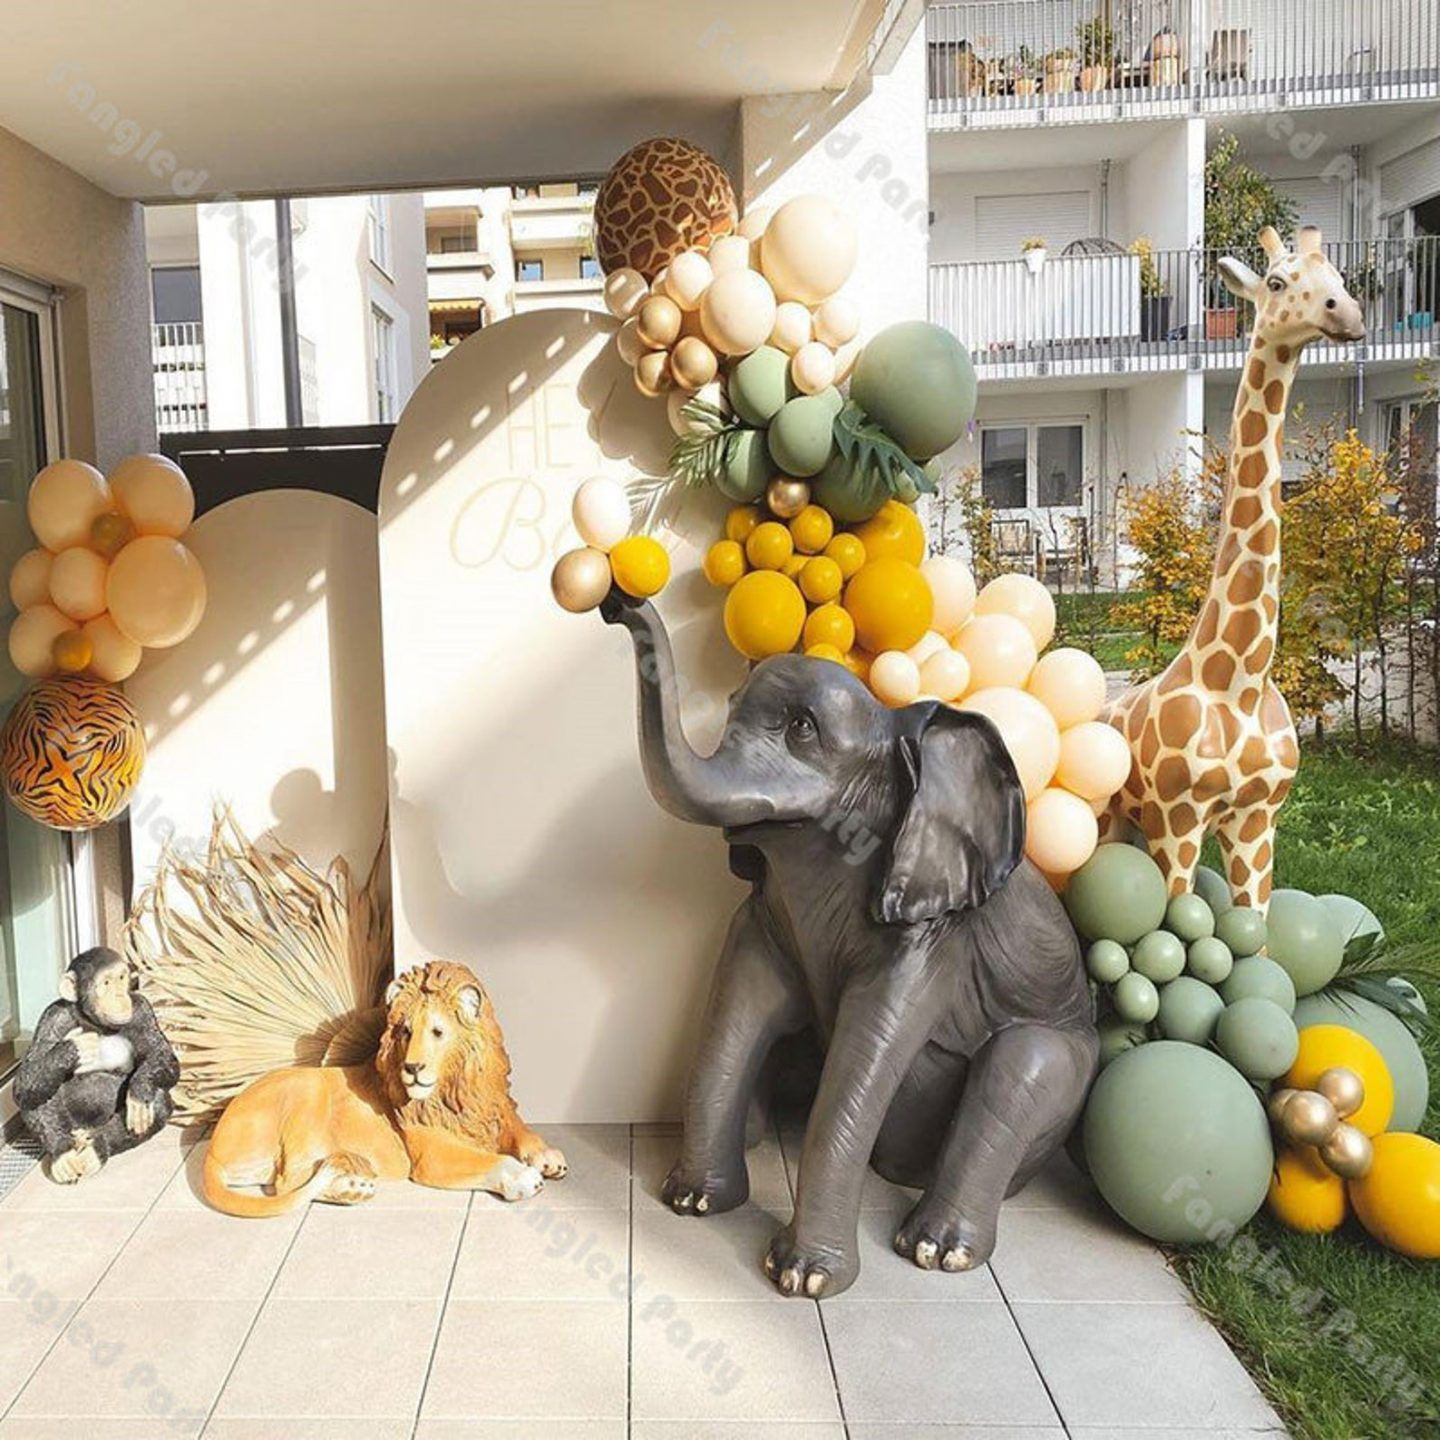 Safari themed birthday party decor with elephant, lion and giraffe and balloons